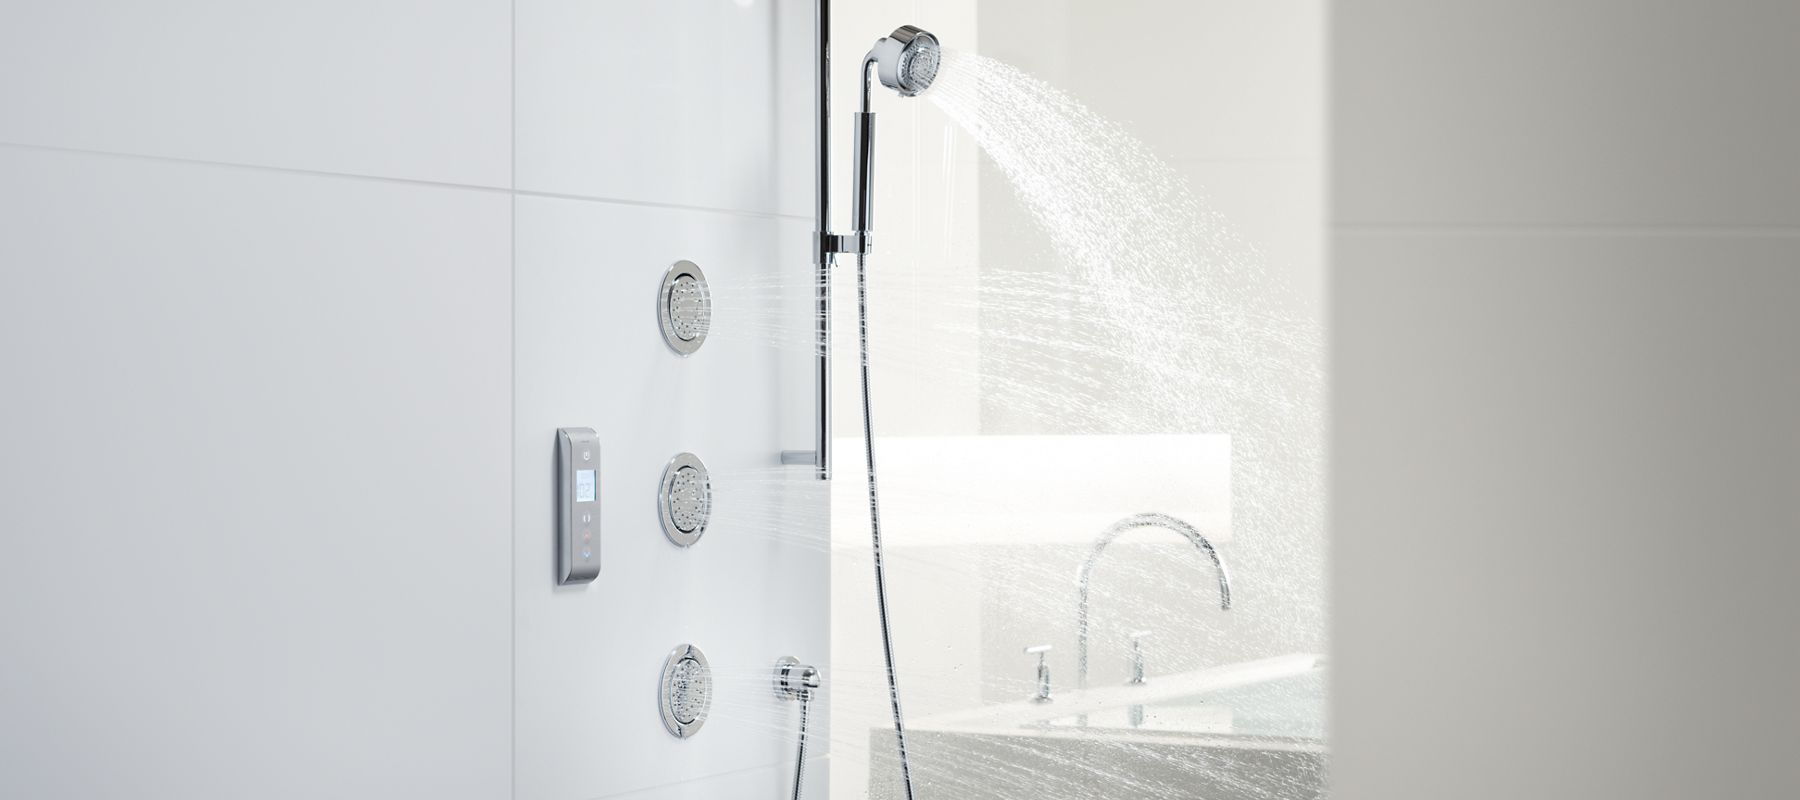 Digital shower temperature control - Go Digital In The Shower With Dtv Prompt